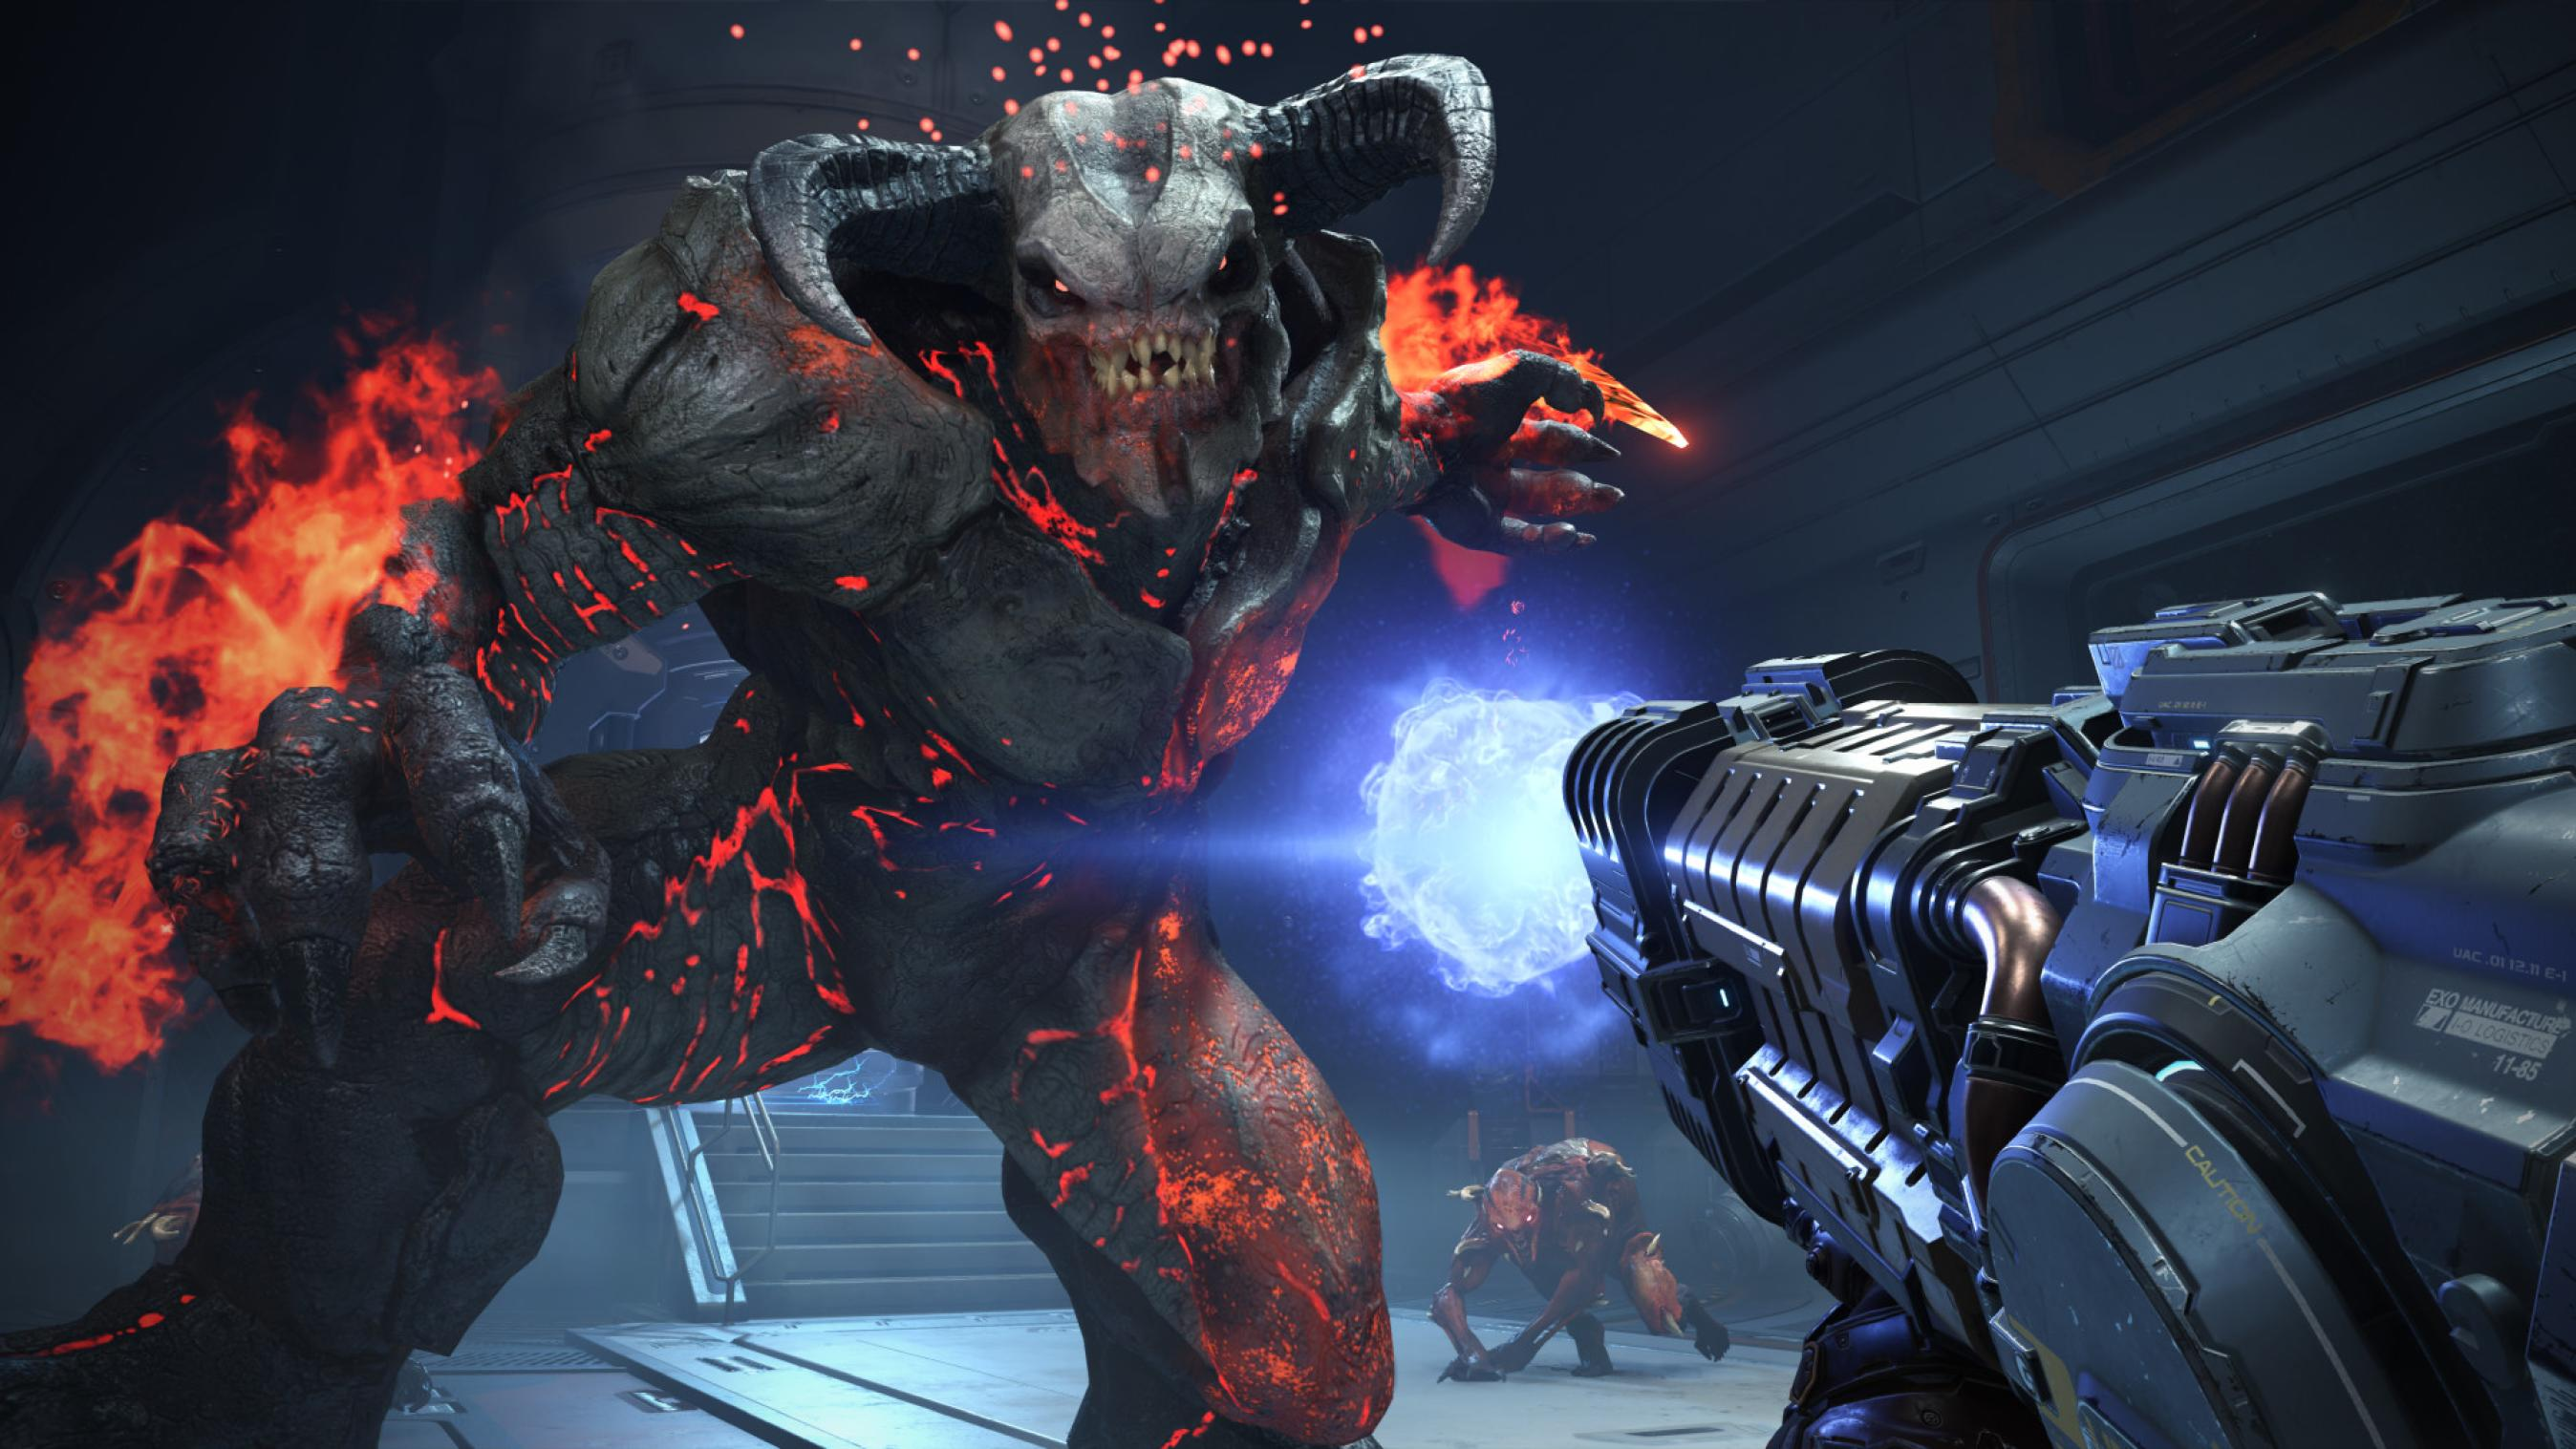 A large demon with horns pulls an arm back to strike. His skin is leathery and black with red embers rising out of various cracks. His hands are on fire. A large gun shoots the demon with blue energy as another, smaller demon watches next to a staircase in the background.